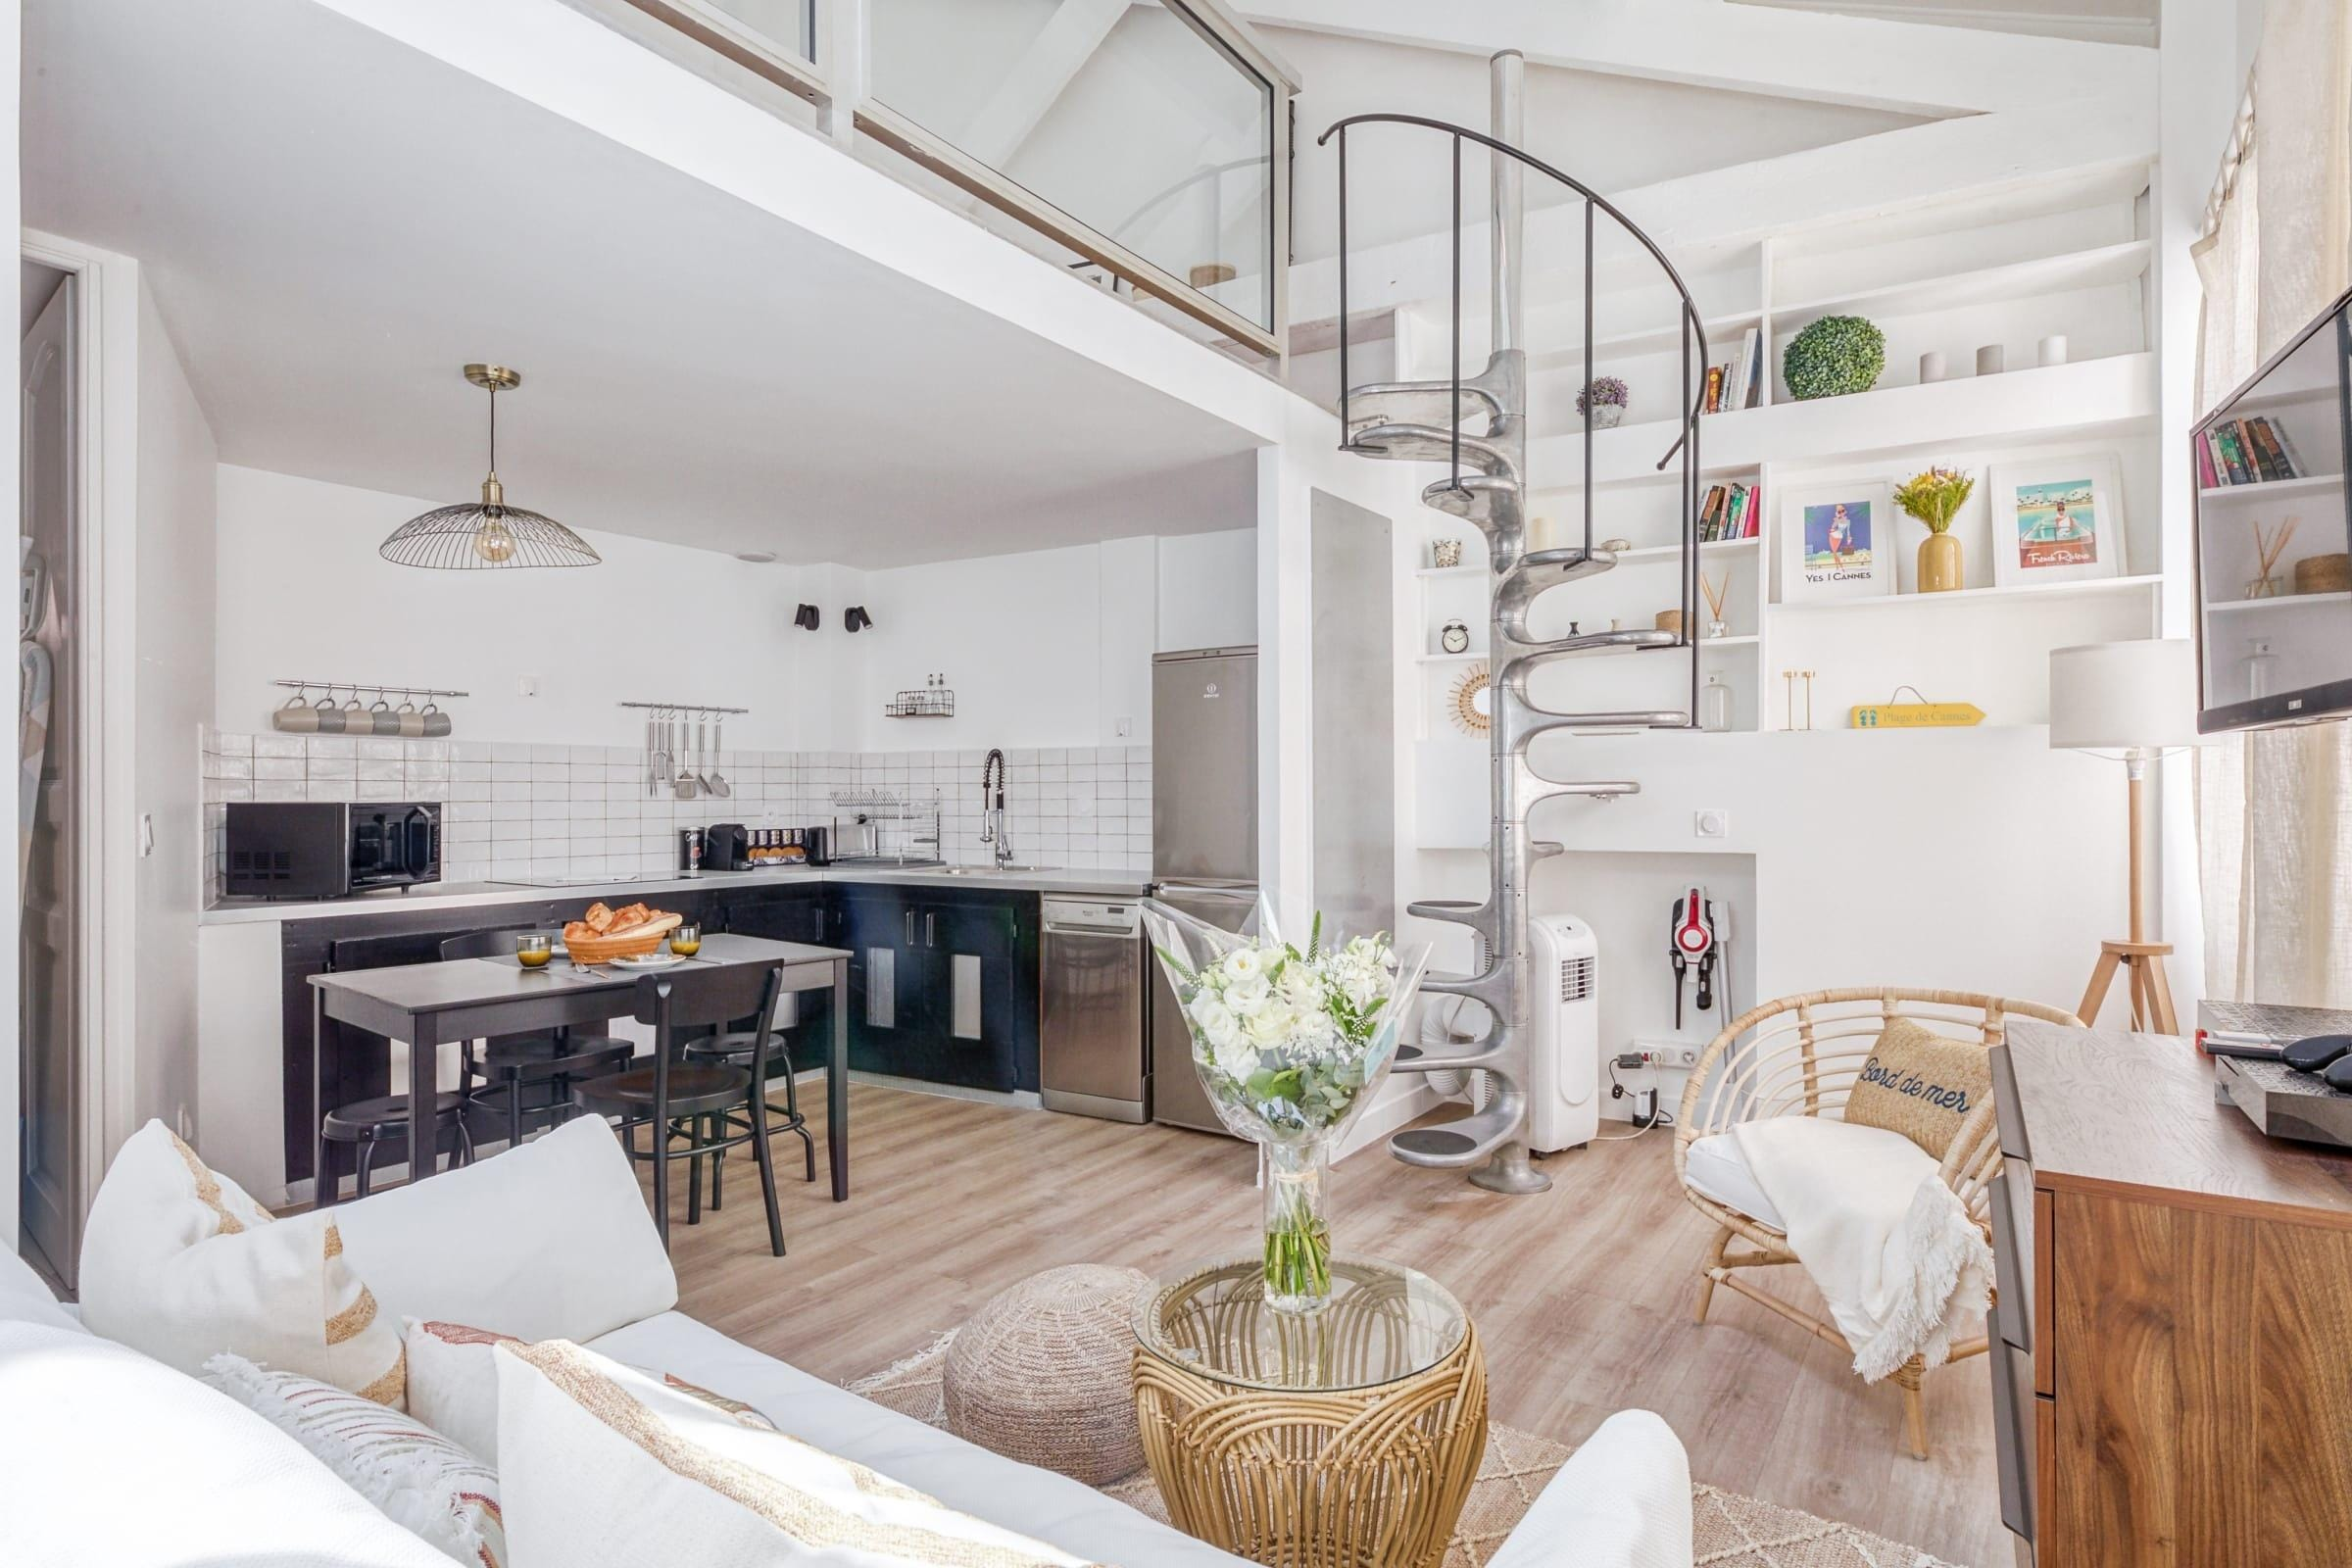 Stunning Mezzanine Apartment in the Heart of Cannes